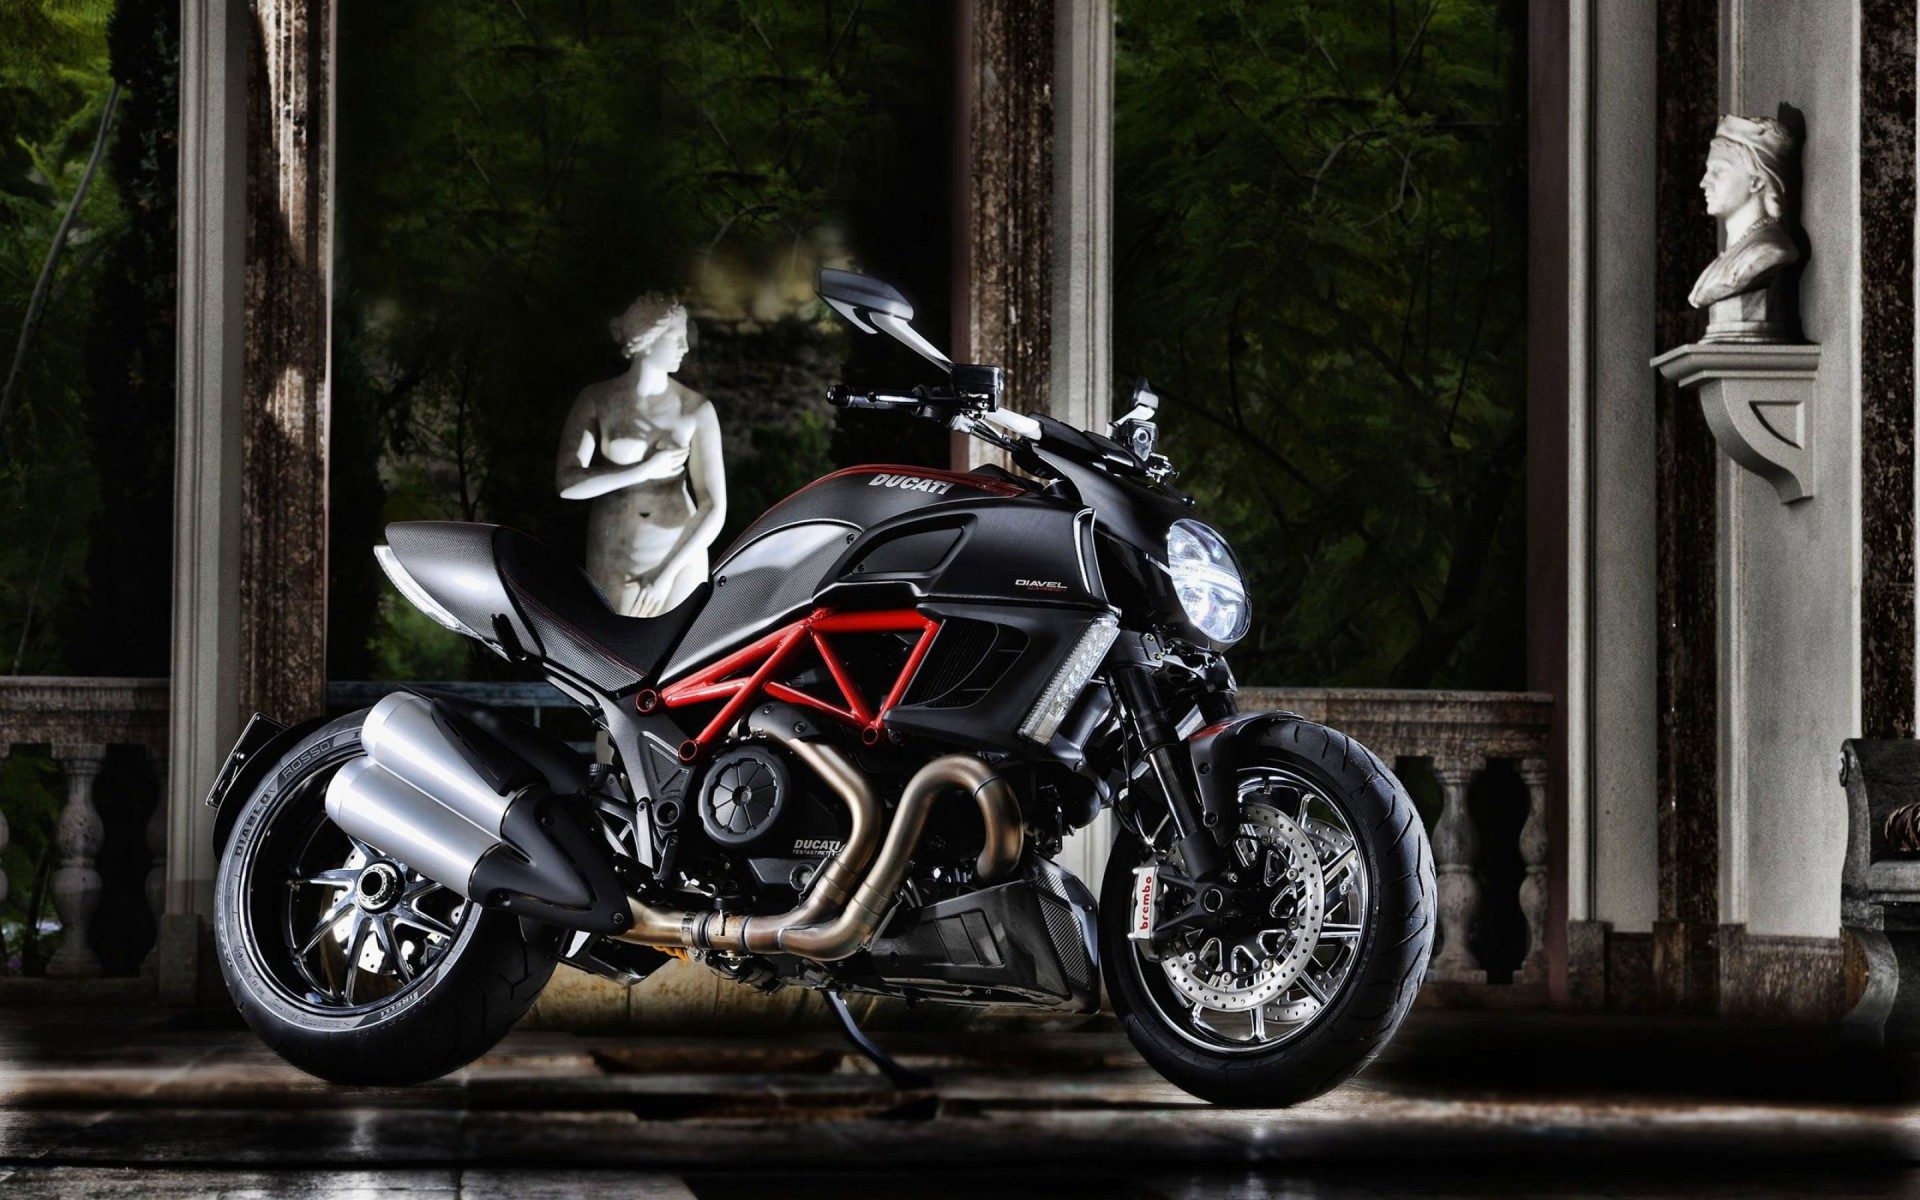 Ducati Diavel Wallpaper for Desktop 1920x1200